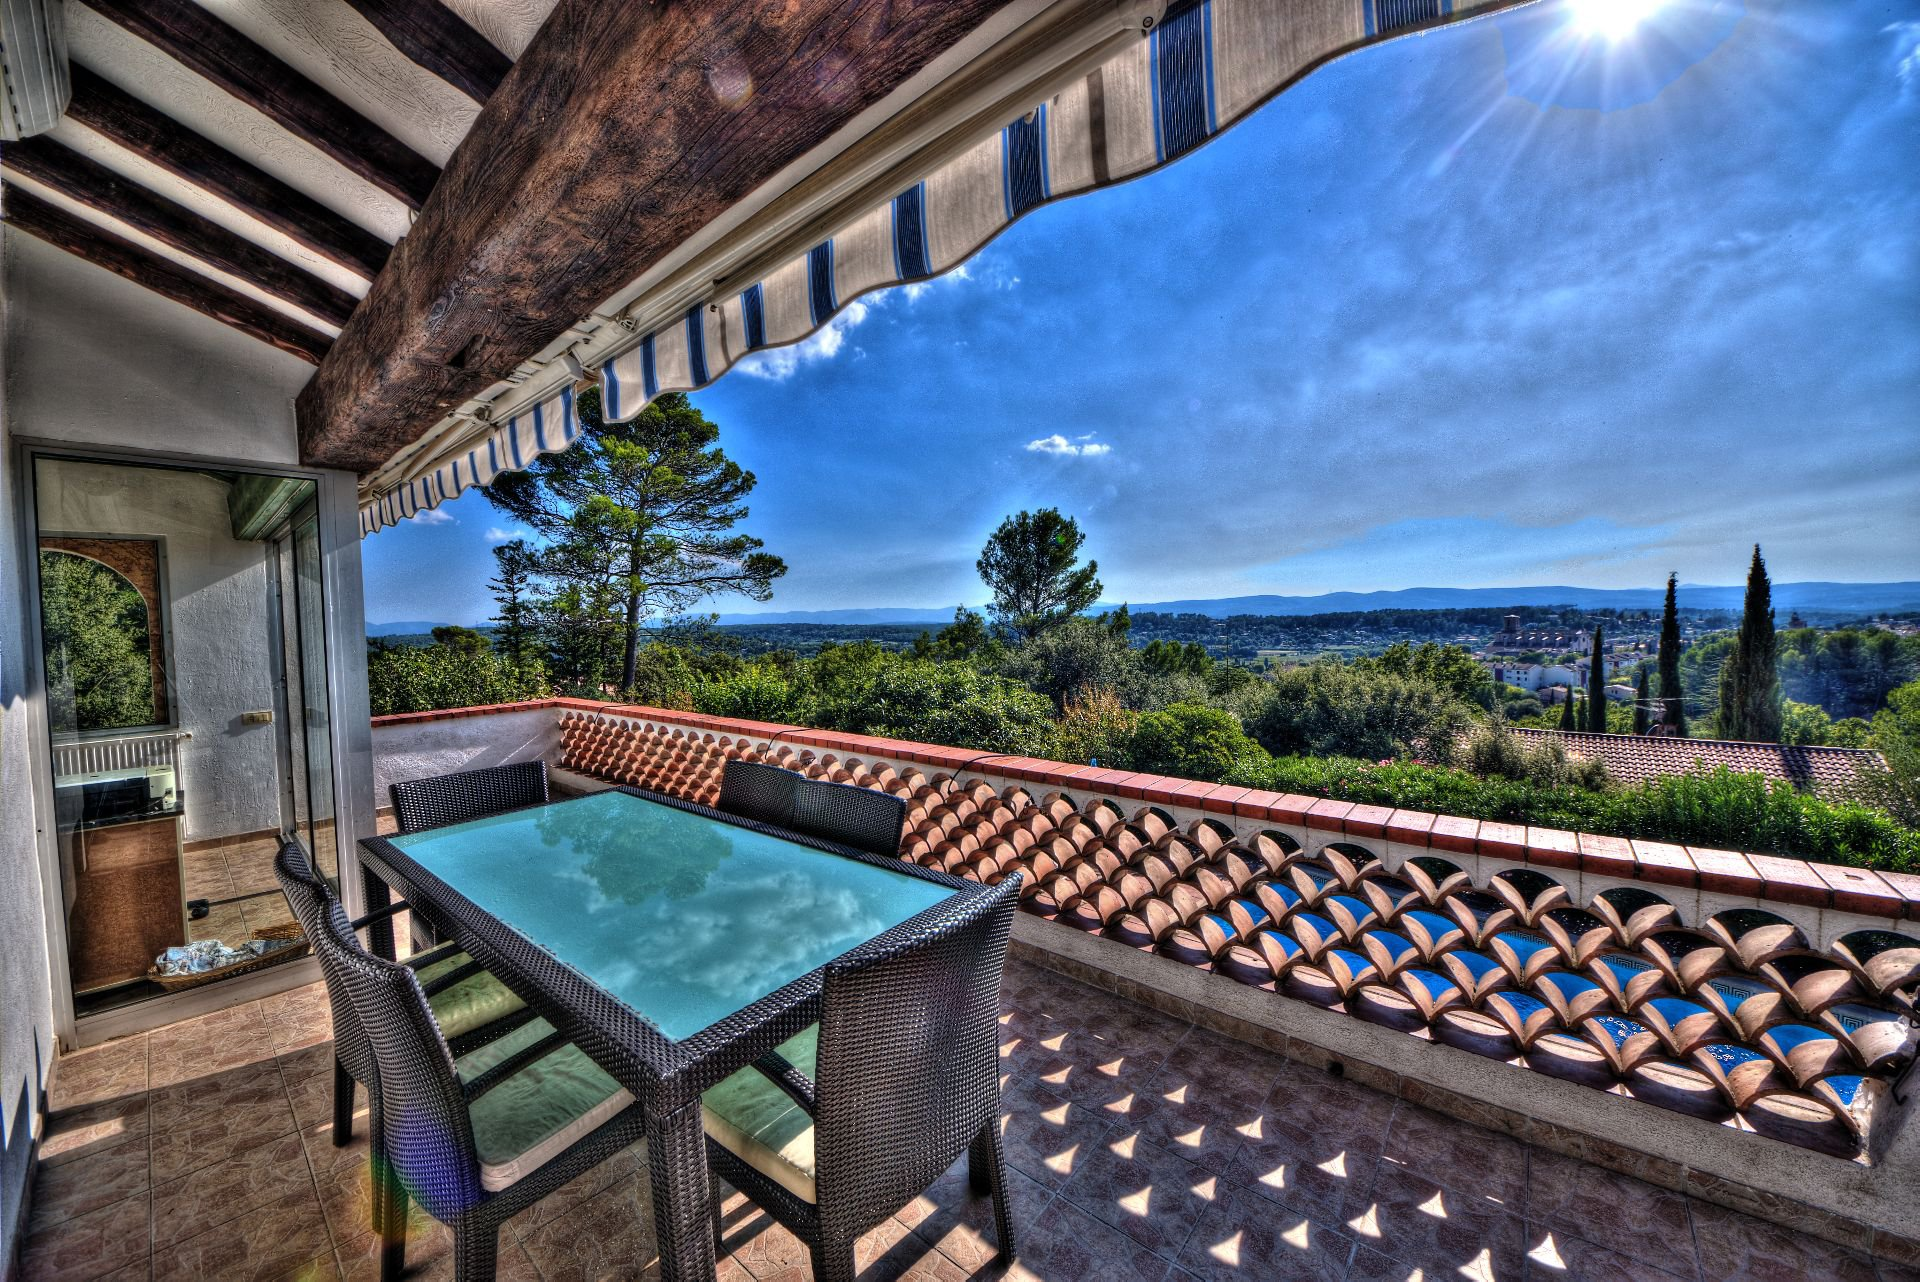 Balcony terrace of the villa 240 m² 4 apartments Lorgues, Provence, Paca